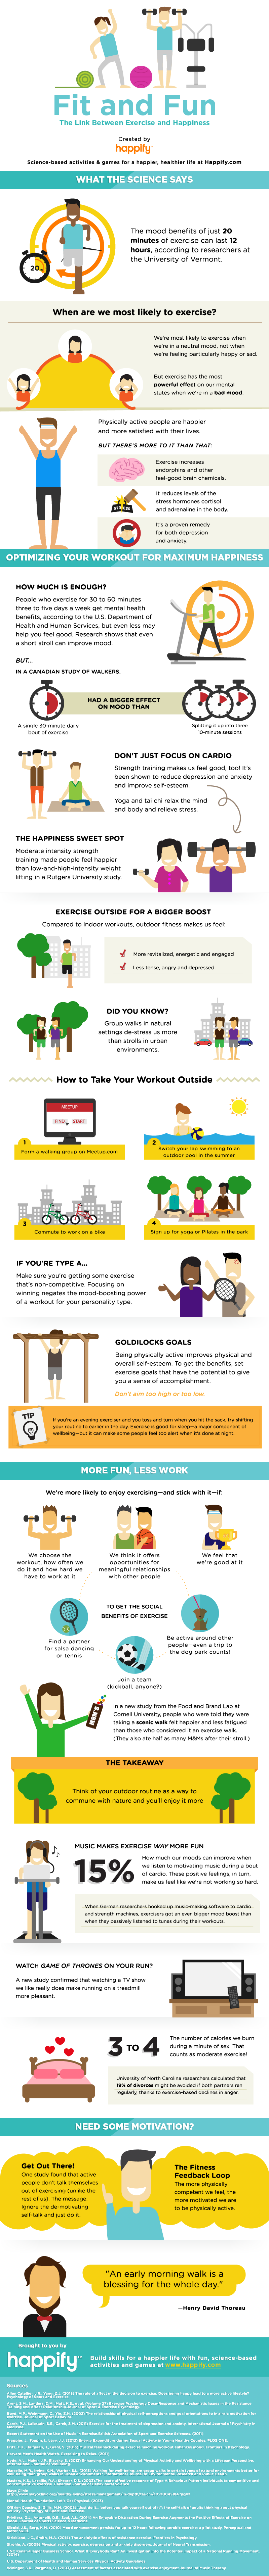 A very powerful infographic showing why physical wellbeing and exercise makes you feel happier.